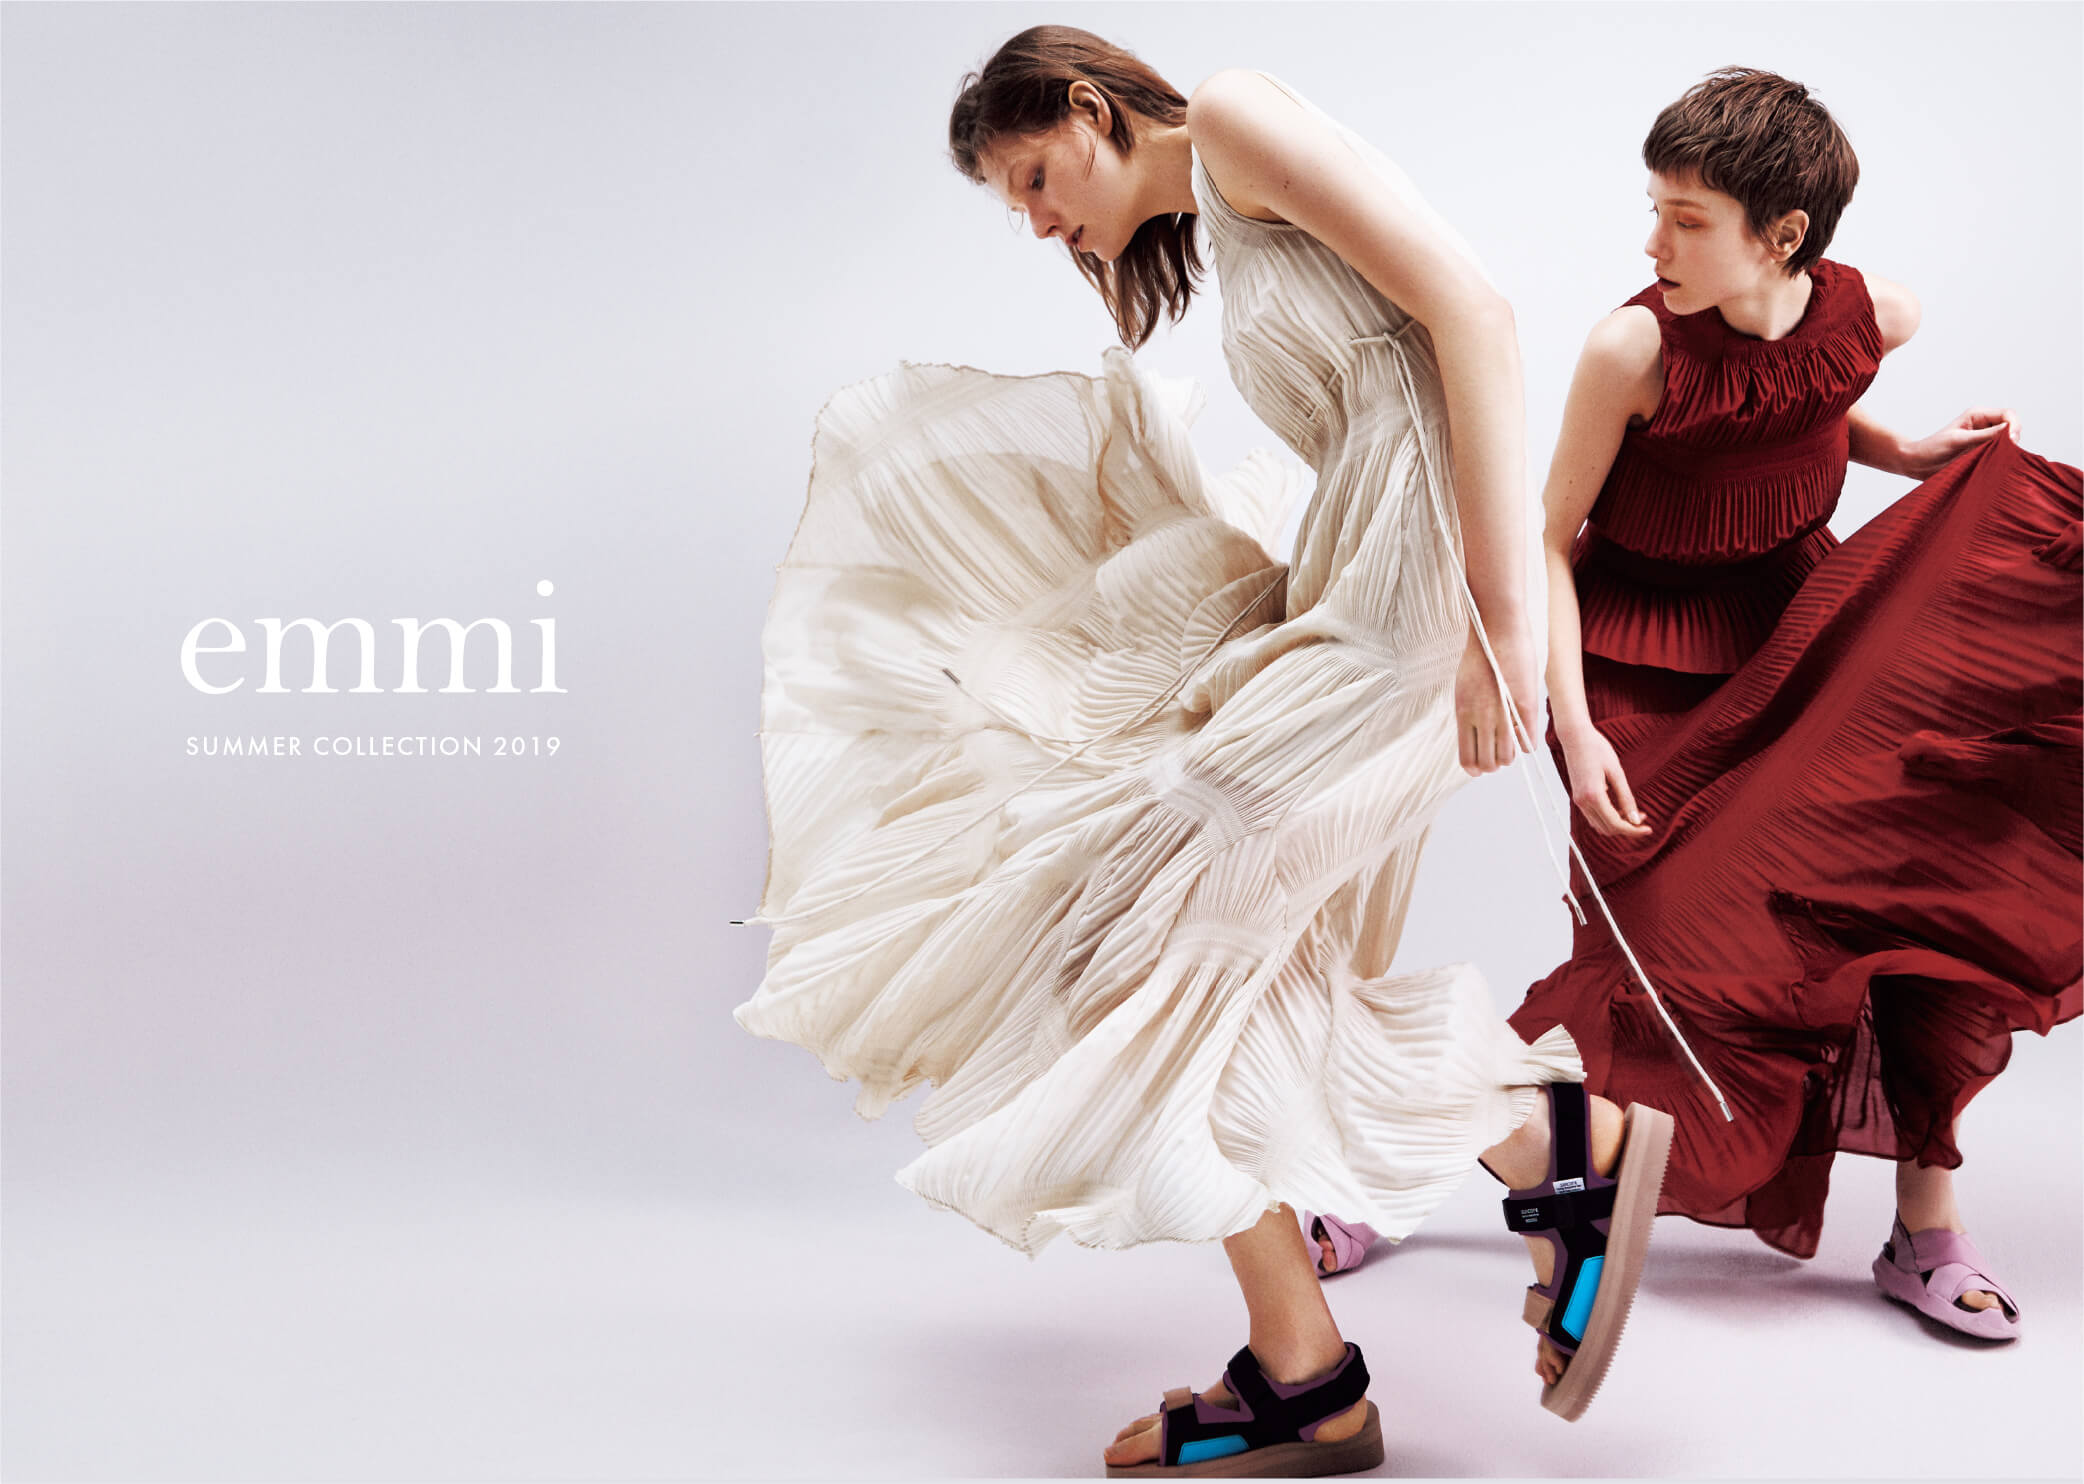 emmi 2019 SPRING SUMMER COLLECTION 2nd